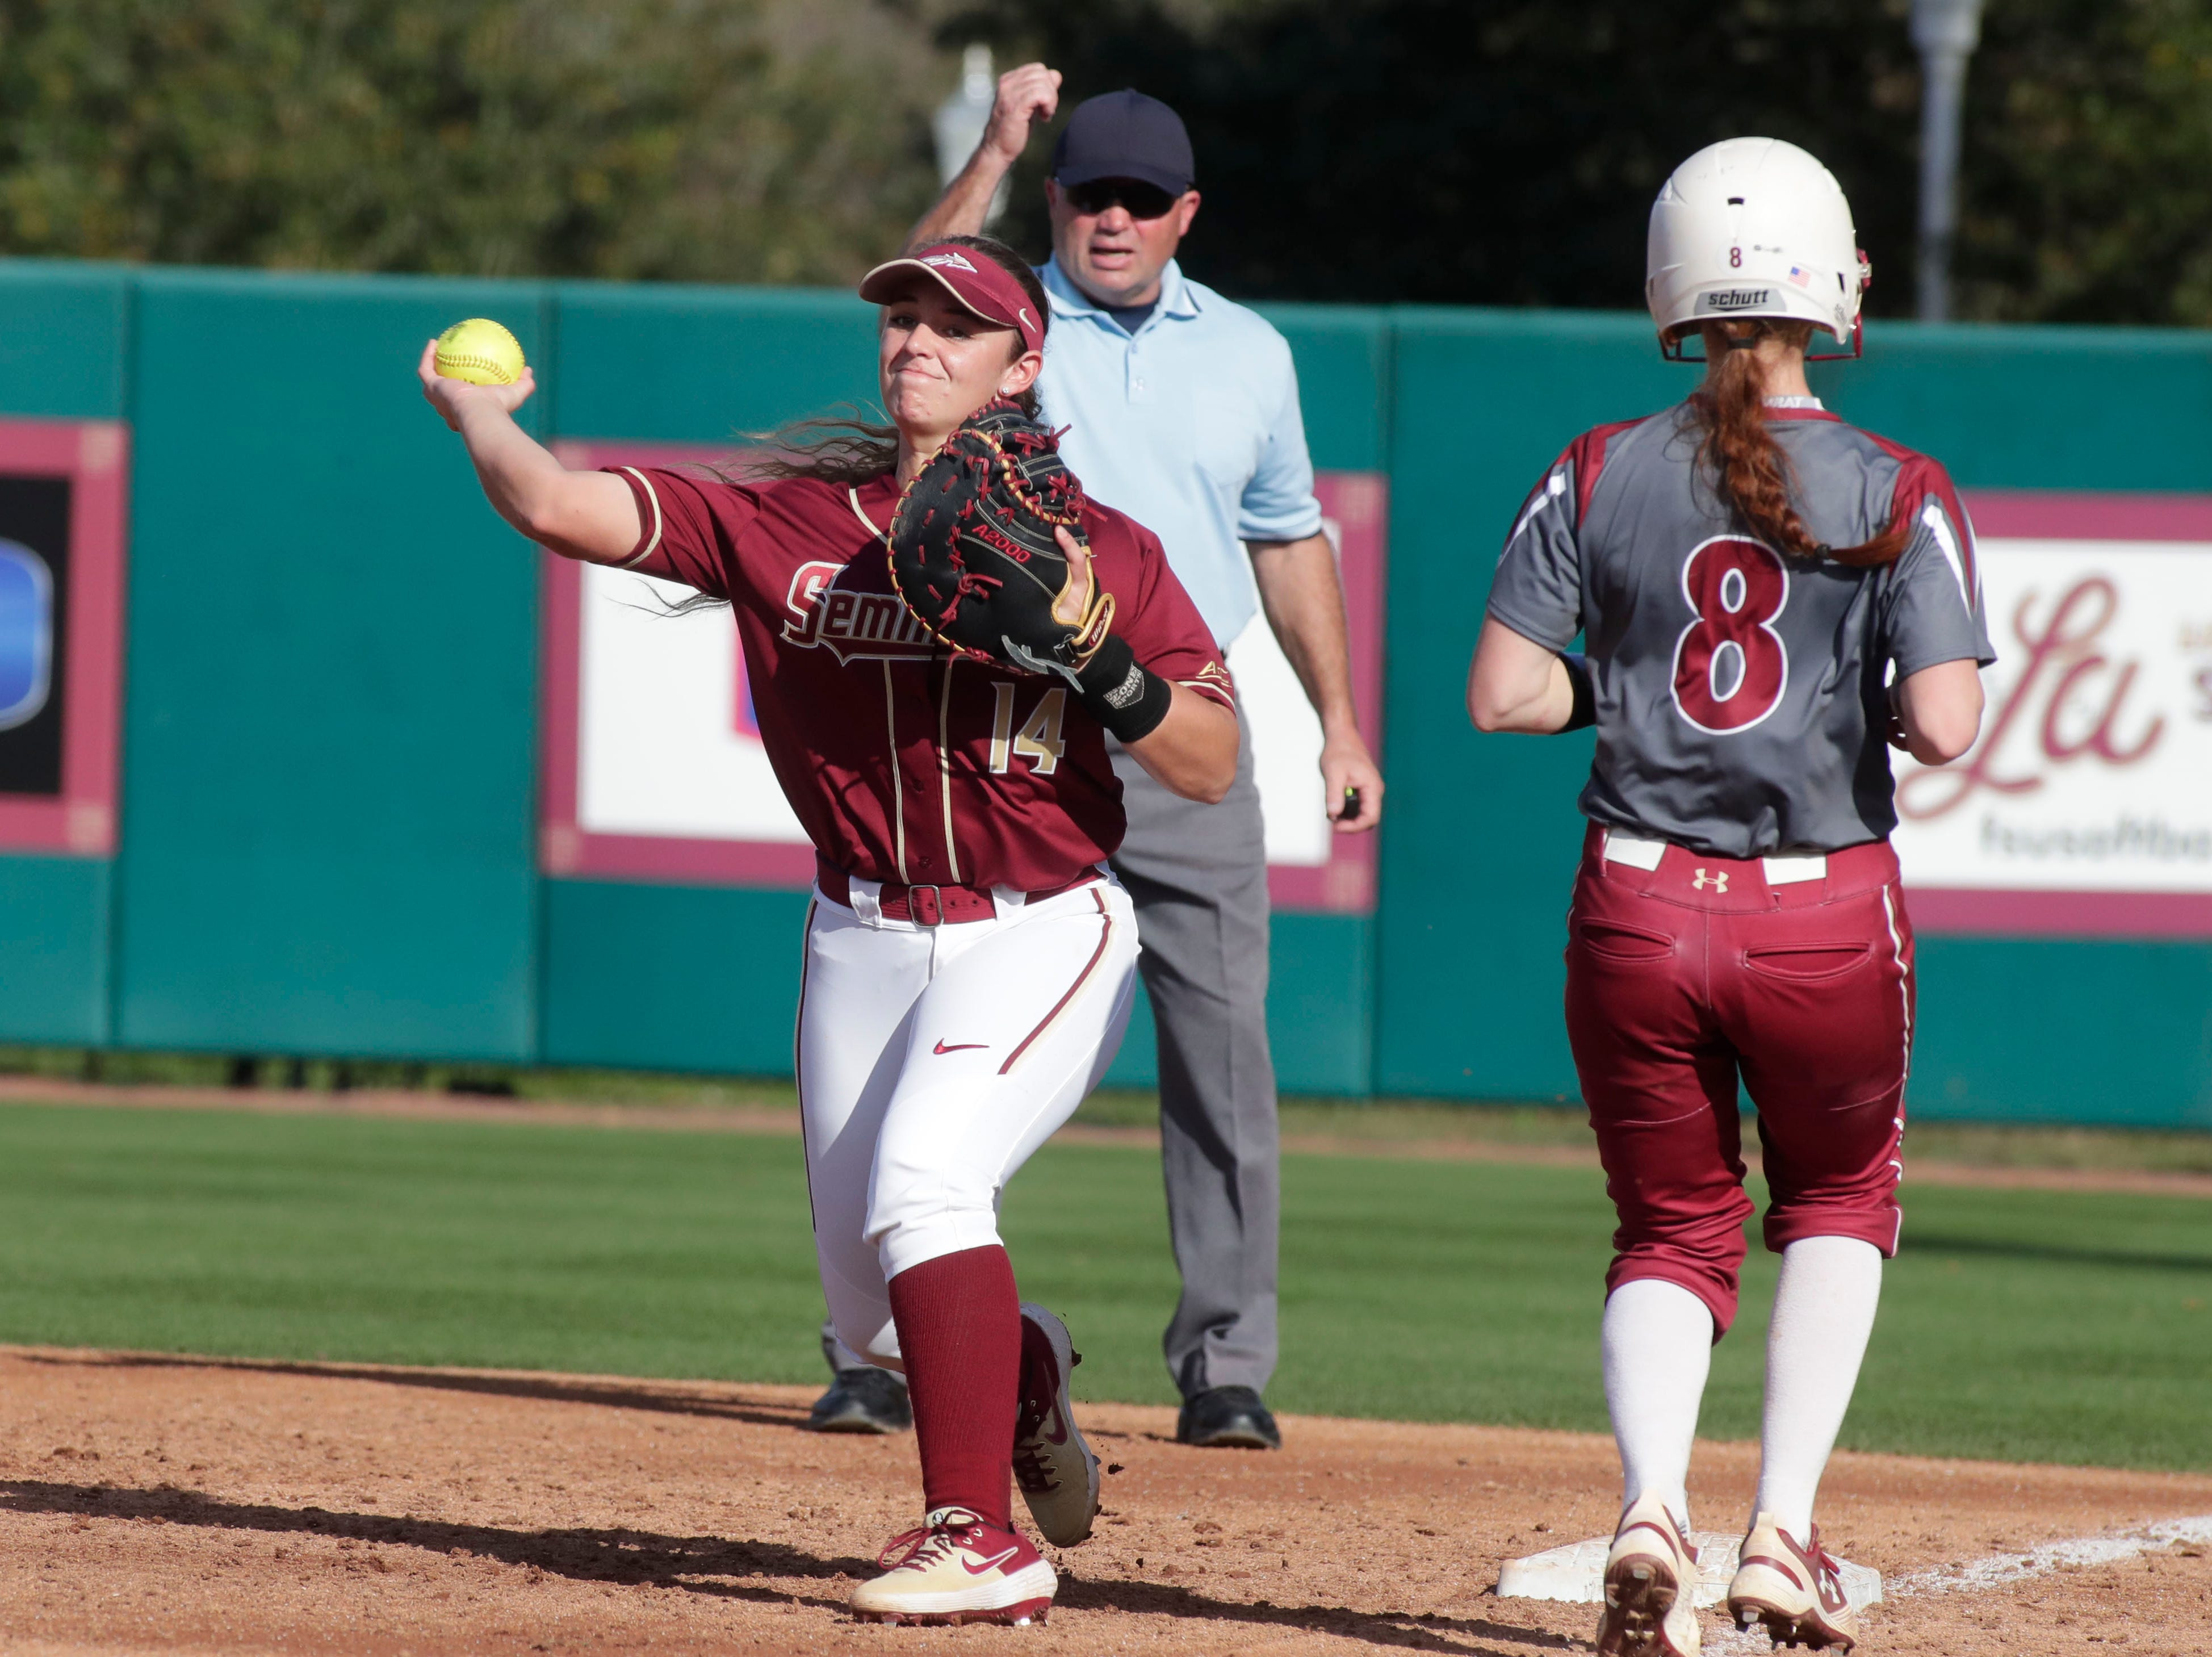 Florida State Seminoles utility player Savannah Parker (14) throws to home after getting the out at first base. The Florida State Seminoles host the Elon Phoenixes for the Unconquered Tournament, Friday Feb. 22, 2019.